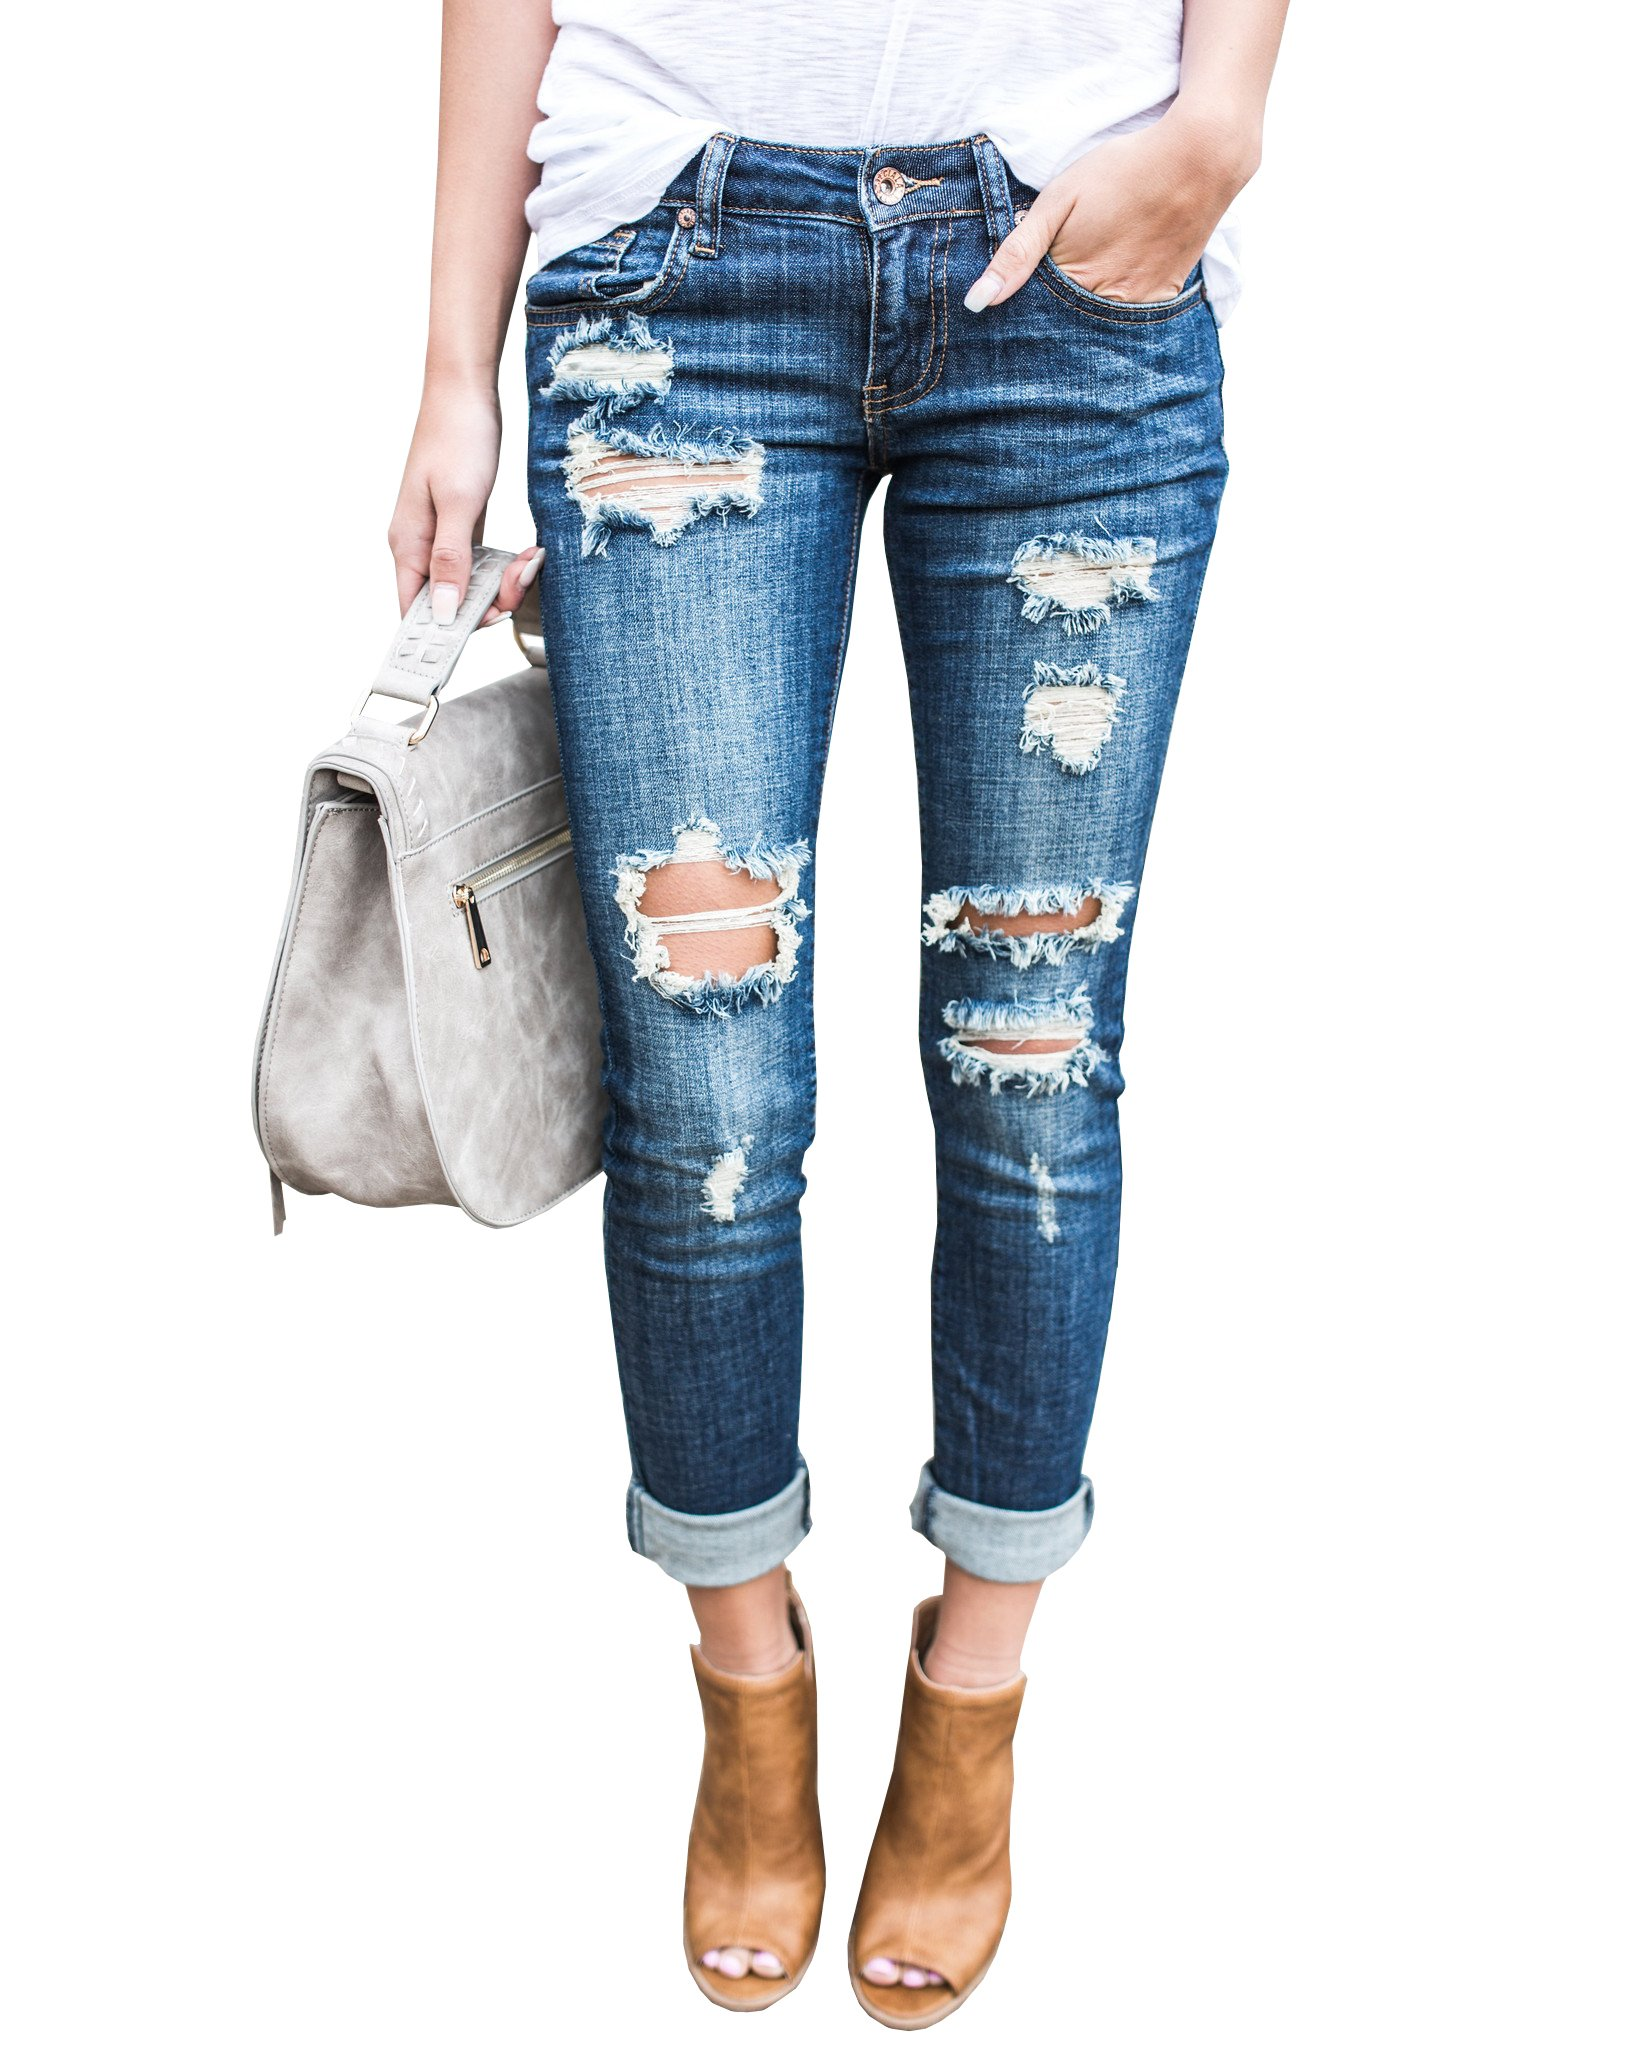 Misassy Womens Juniors Distressed Ripped Destroyed Jeans Skinny Moto Leggings with Frayed Hem